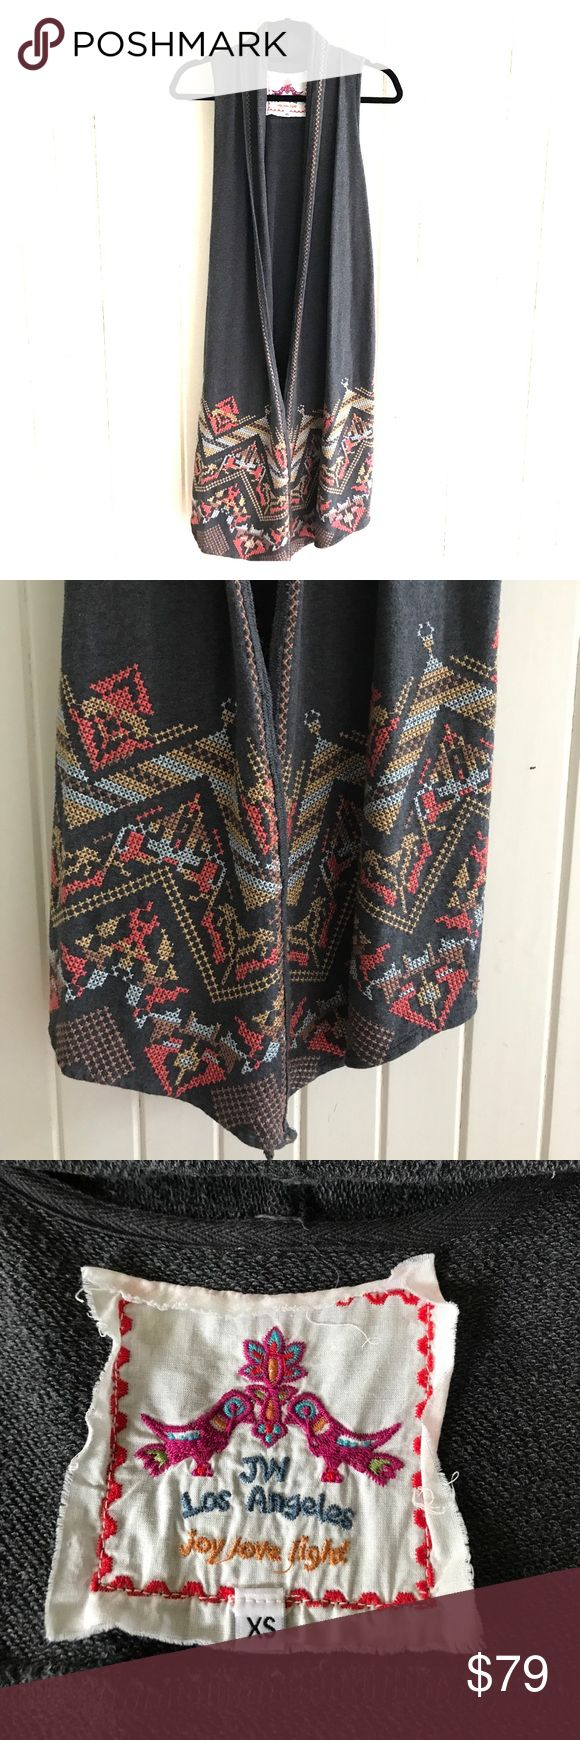 Johnny Was Teegan Draped Jersey Hi-Lo Vest Great jersey cotton vest from Johnny Was LA Hi-Lo Hem leave open or cross over front and tie. Lols fab with jeans and boots , or over a long skirt or dress. New without tags, from my clothing boutique. Johnny Was Jackets & Coats Vests